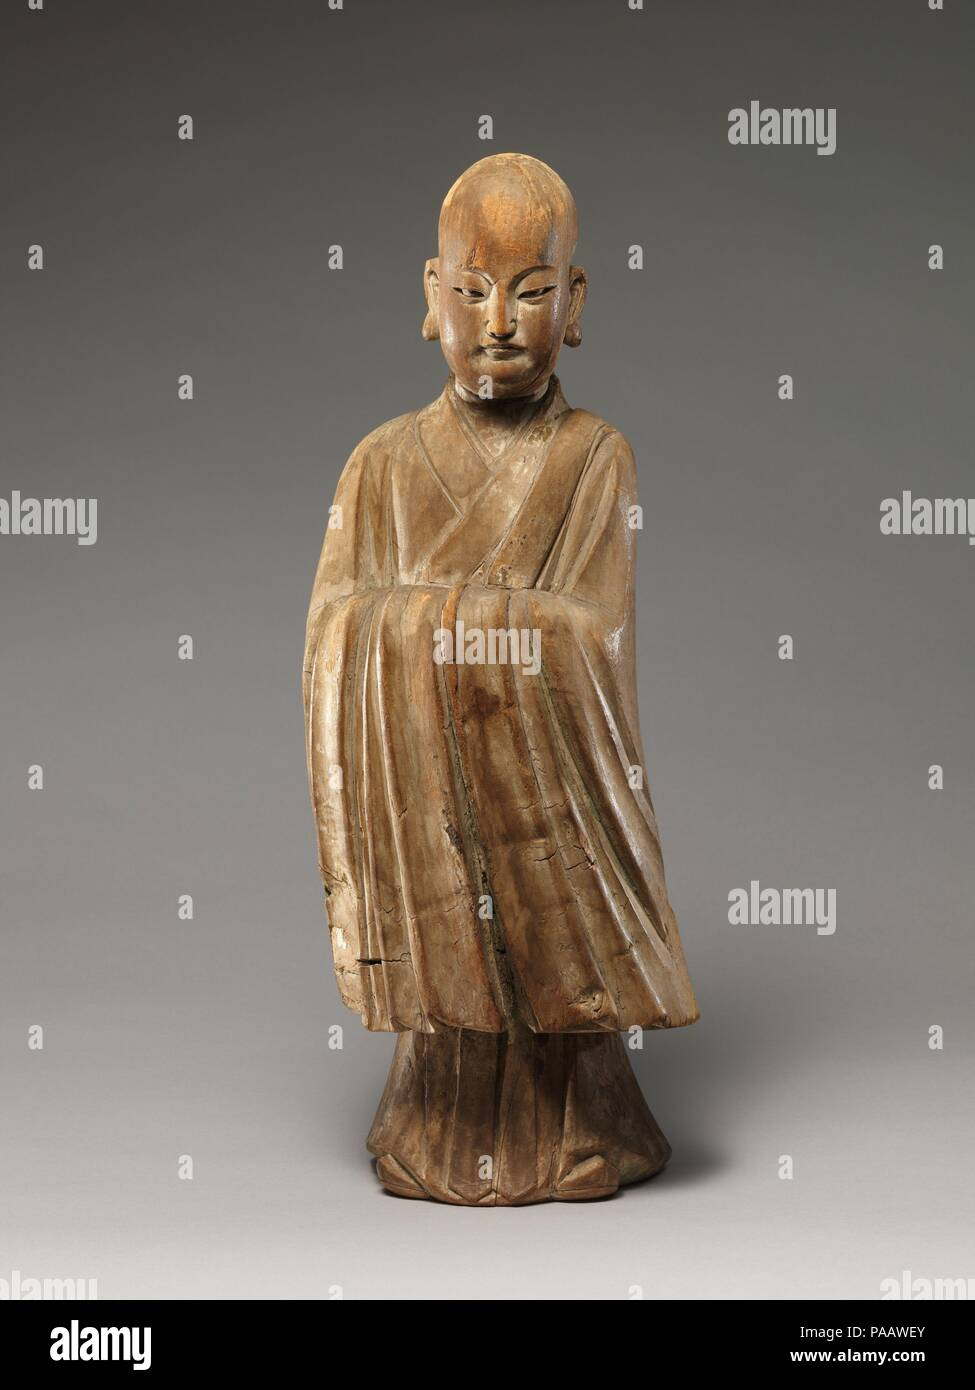 Arhat (Luohan). Culture: China. Dimensions: H. 19 1/8 in. (48.6 cm); W. 7 in. (17.8 cm). Date: 16th-17th century.  This sculpture epitomizes the merging of religious and secular imagery in later Chinese Buddhist sculpture. With his shaven head and elongated earlobes, the figure resembles a luohan (one of the Indian disciples of the Buddha), but his refined facial features, dignified posture, long-sleeved robe, and pointed shoes--all attributes associated with Confucian scholar-officials--identify him unmistakably as a youthful monk.  The sculpture's tendency toward abstraction and stylization- - Stock Image